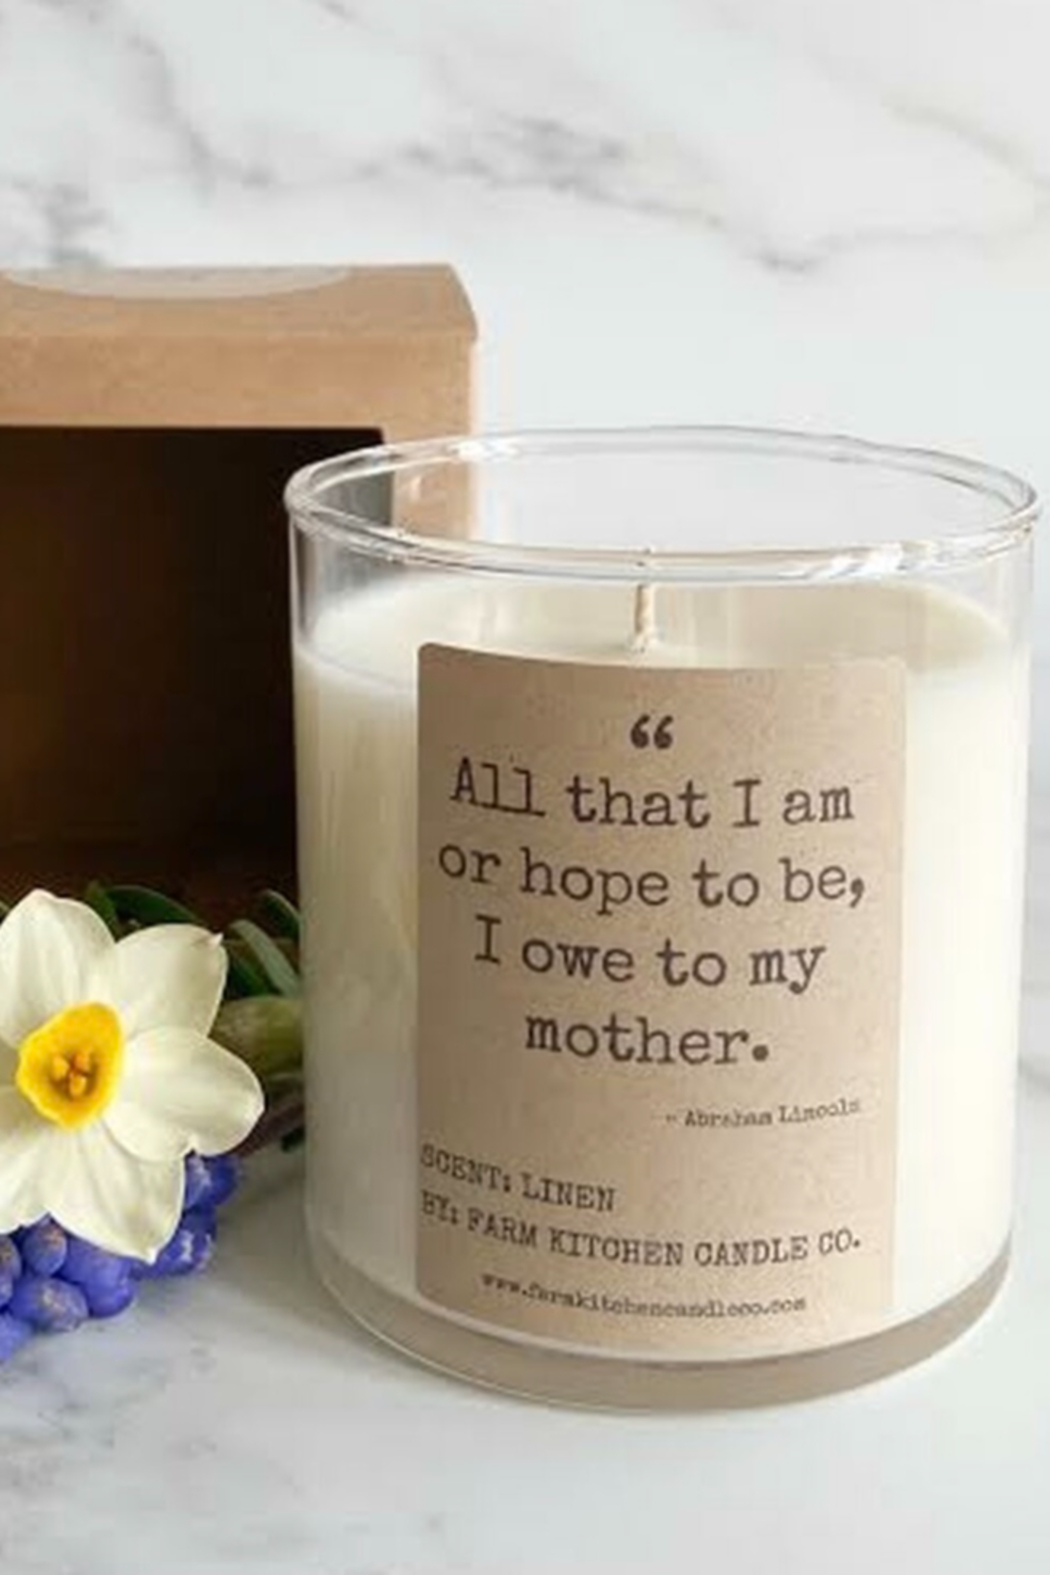 Farm Kitchen Candle Co. All That I Am Candle - Main Image